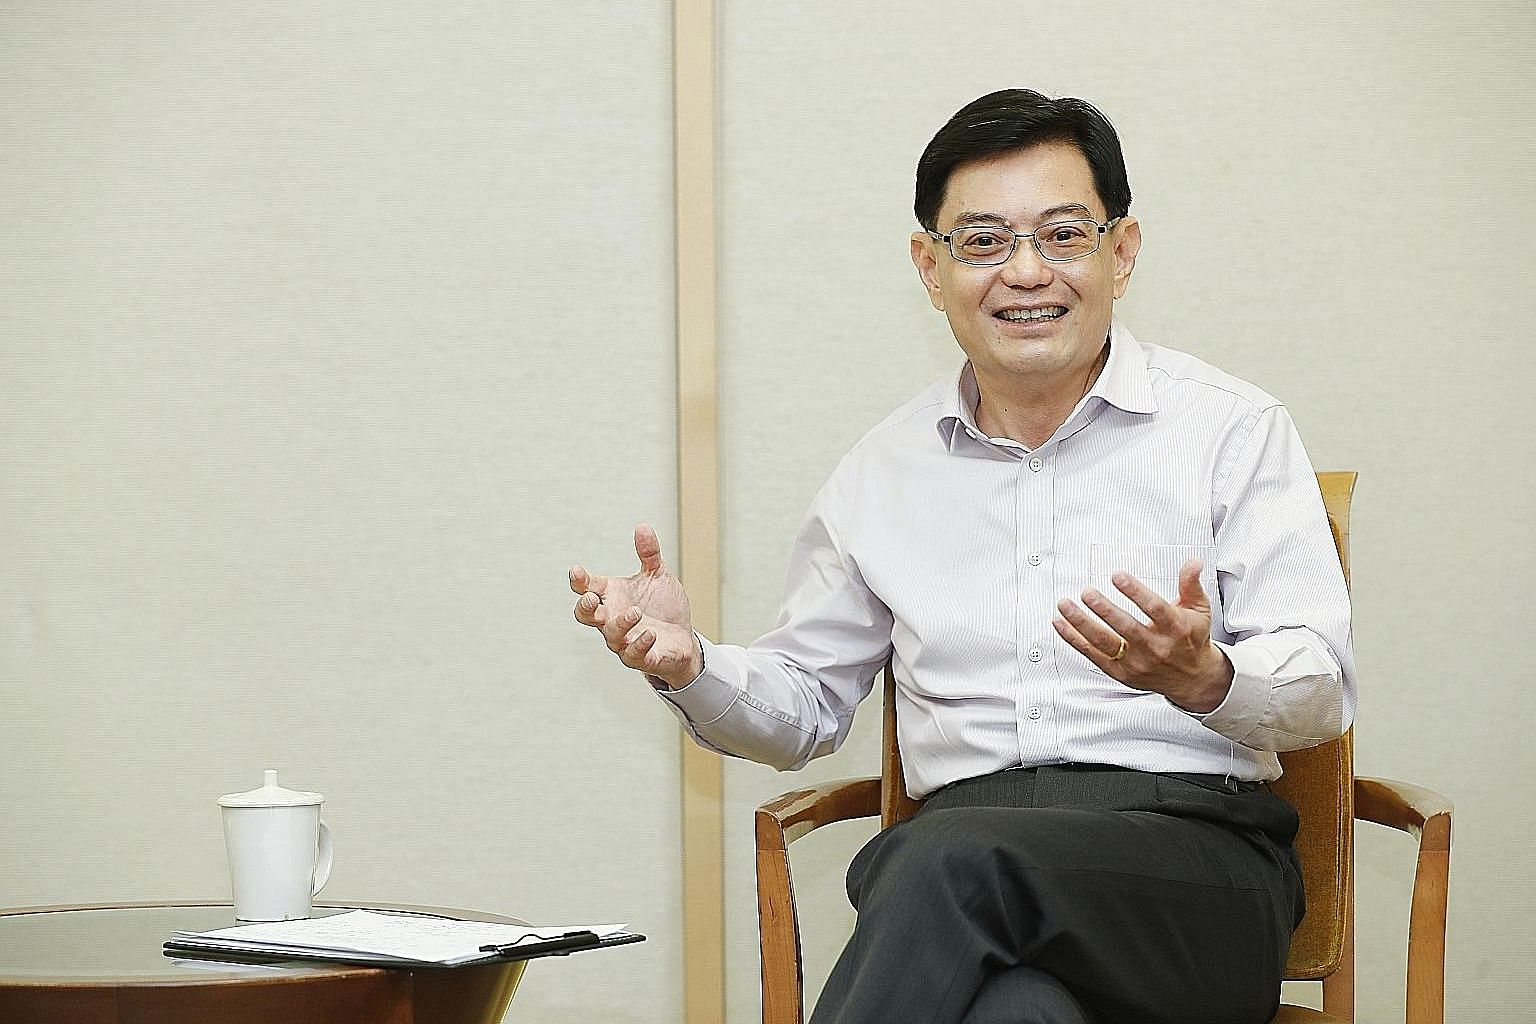 """Mr Heng Swee Keat stressed the importance of continuing to develop Singaporeans, adding that """"a well-calibrated inflow of foreign manpower"""" can complement the workforce."""